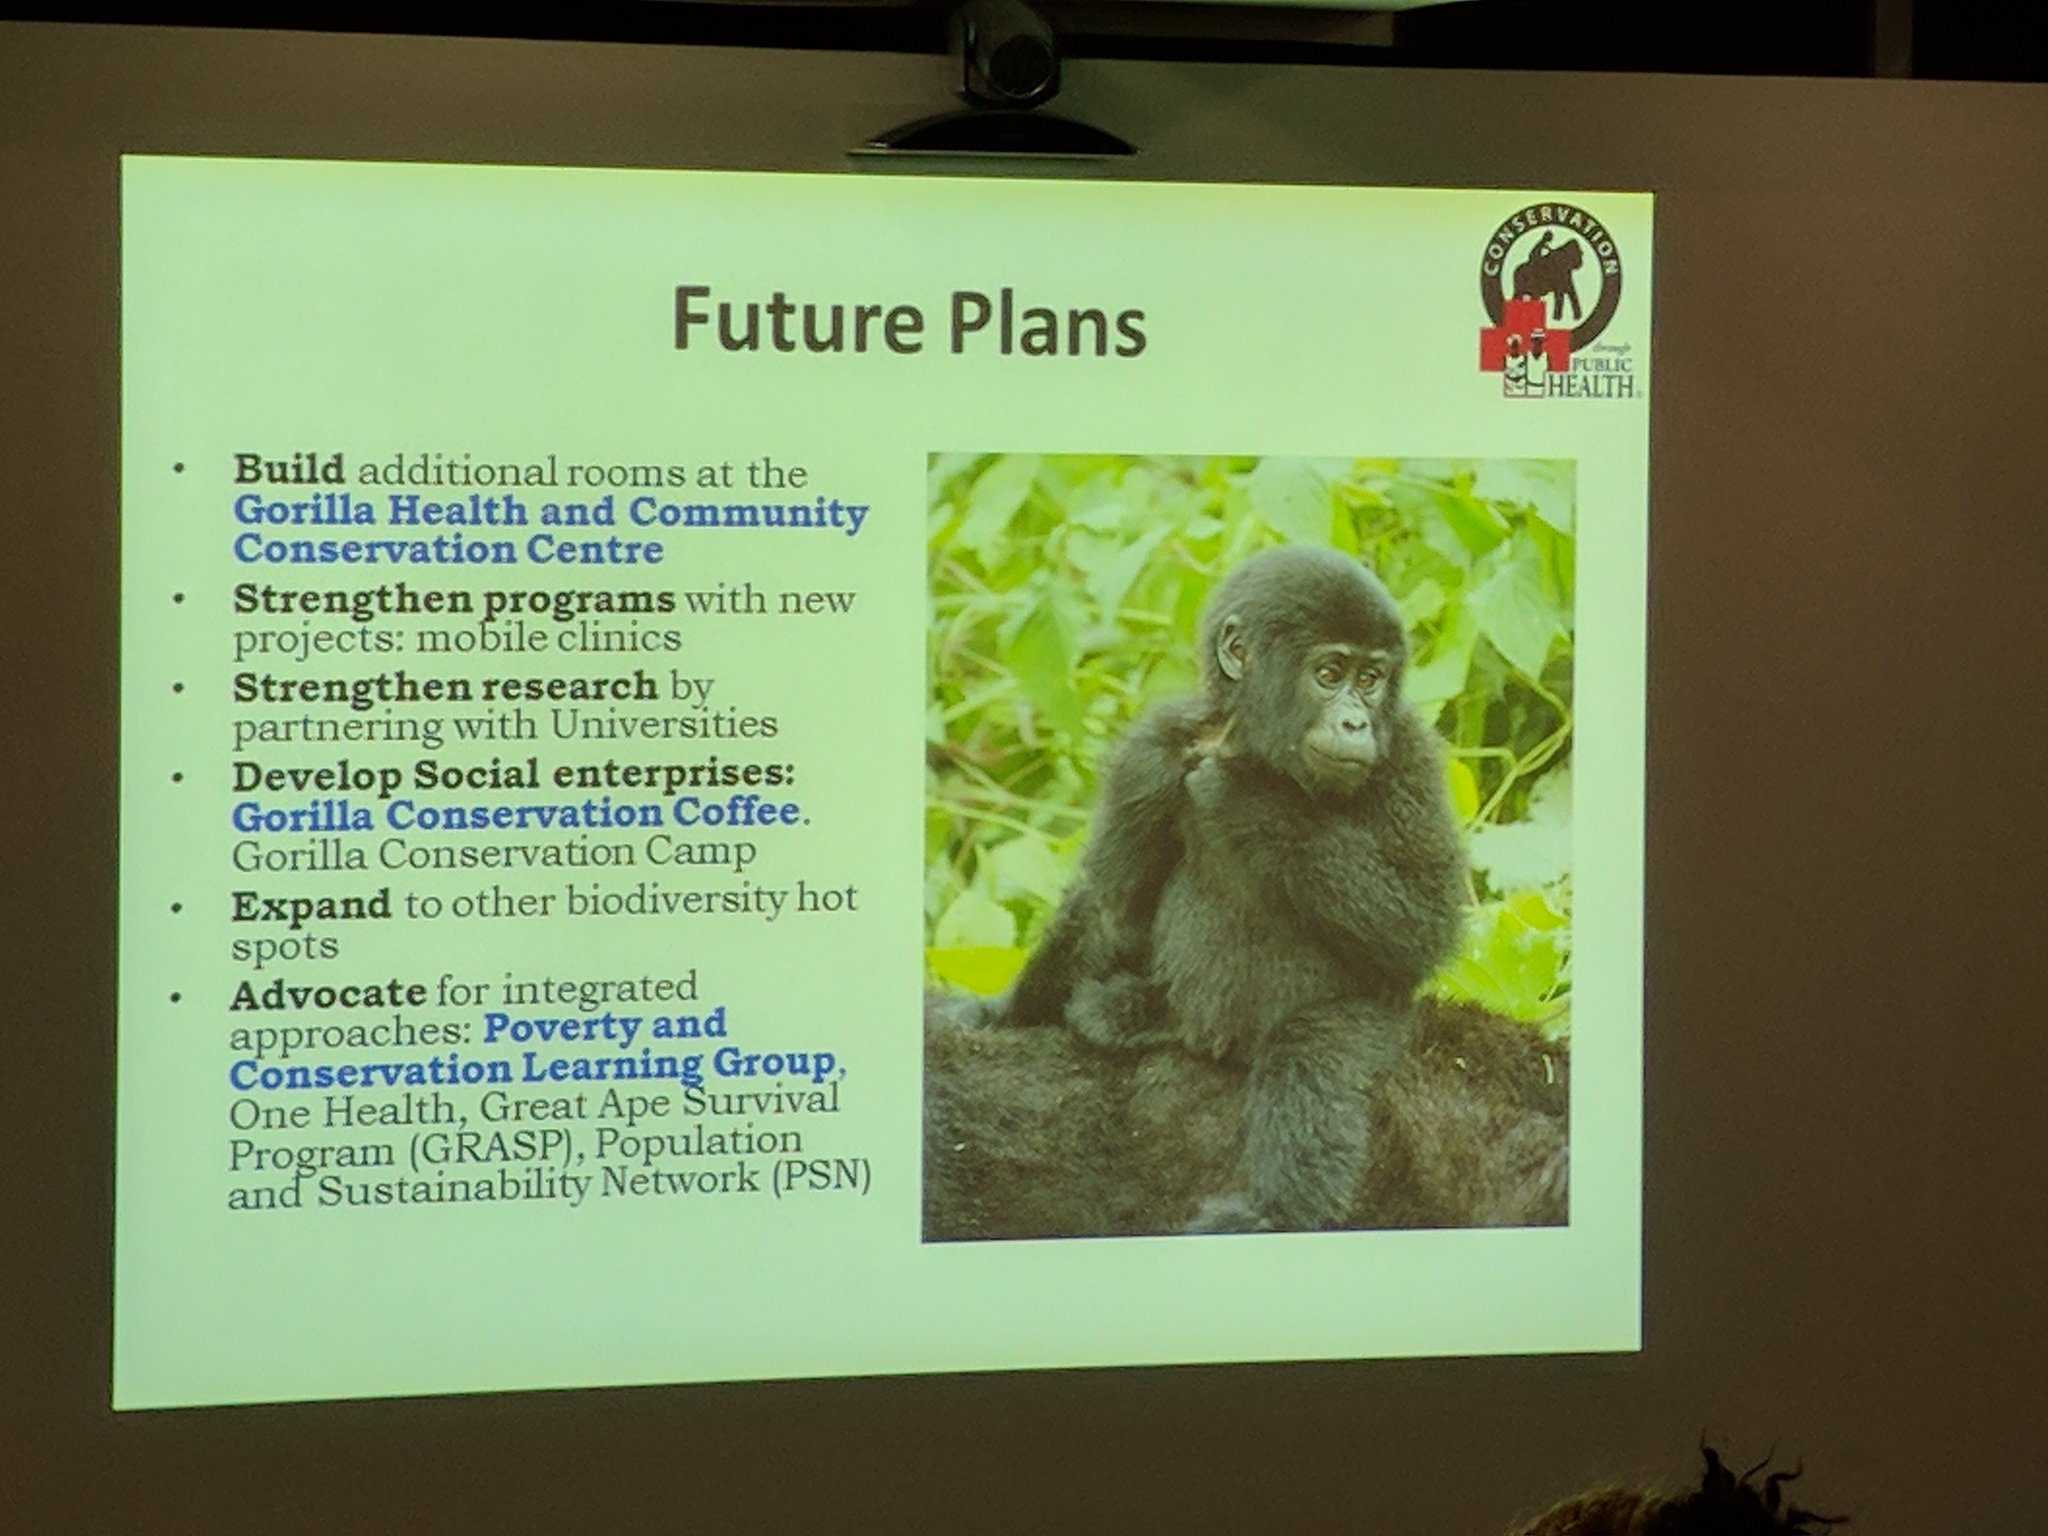 @CTPHuganda have big plans for their projects on health & conservation at #Bwindi https://t.co/jGSJ1JkX8H